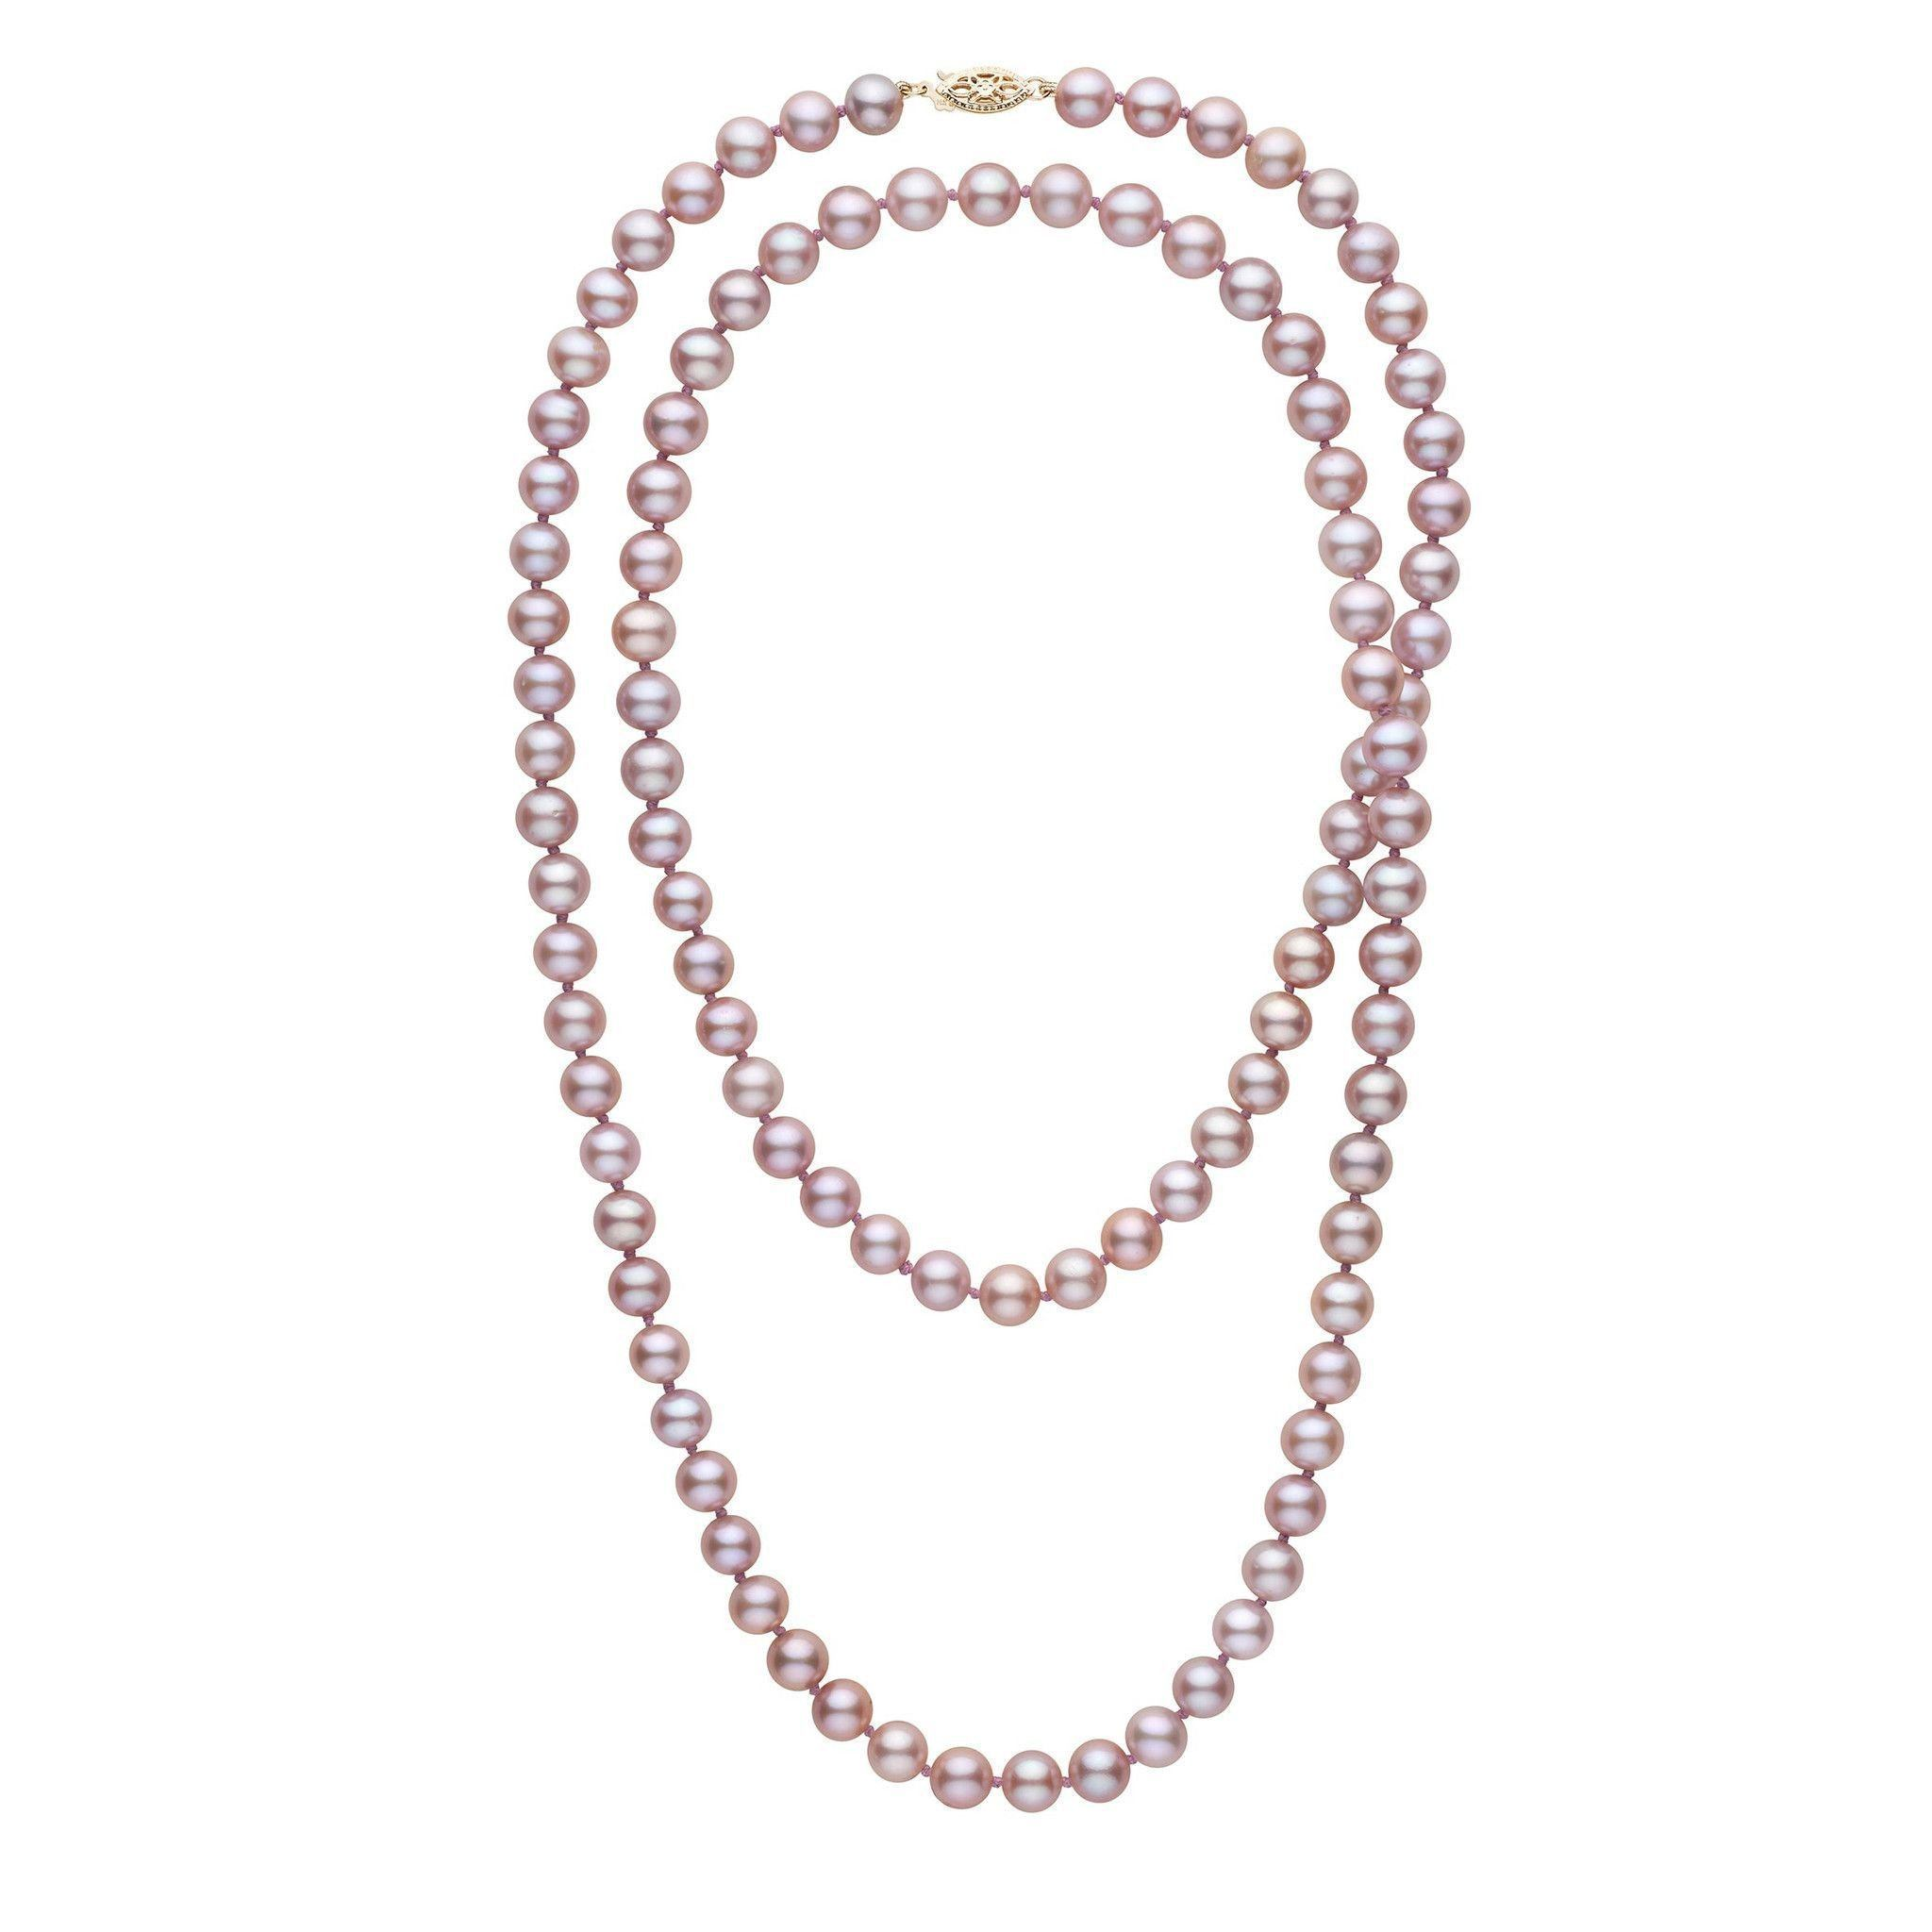 35-inch 7.5-8.0 mm AAA Lavender Freshwater Pearl Necklace